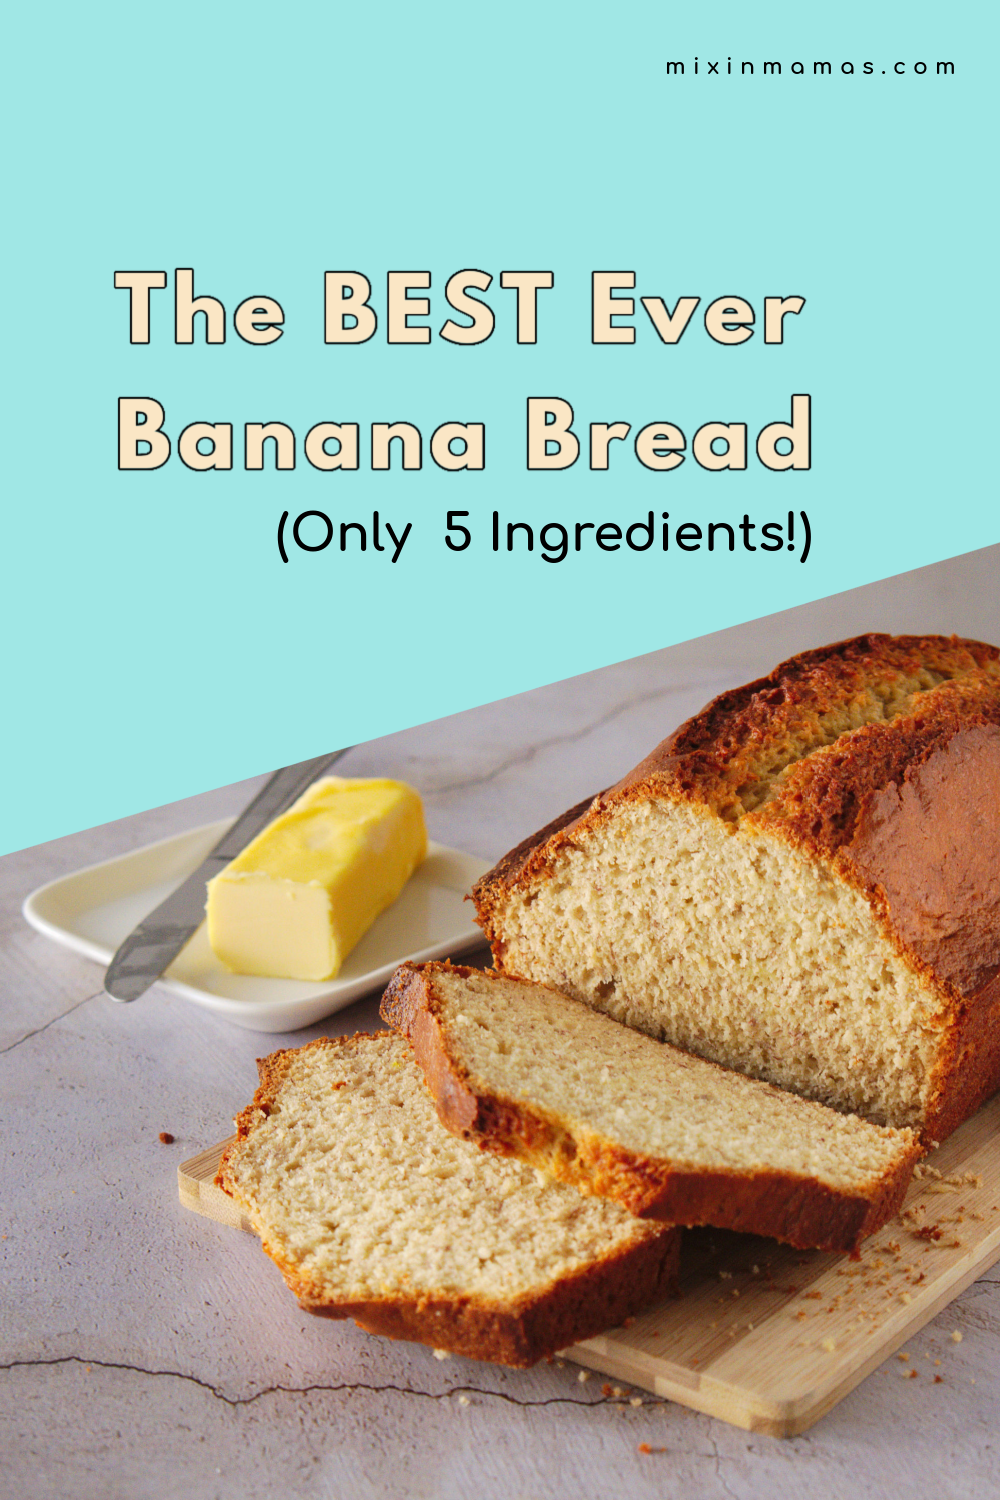 The BEST Ever Banana Bread (Only 5 Ingredients!)